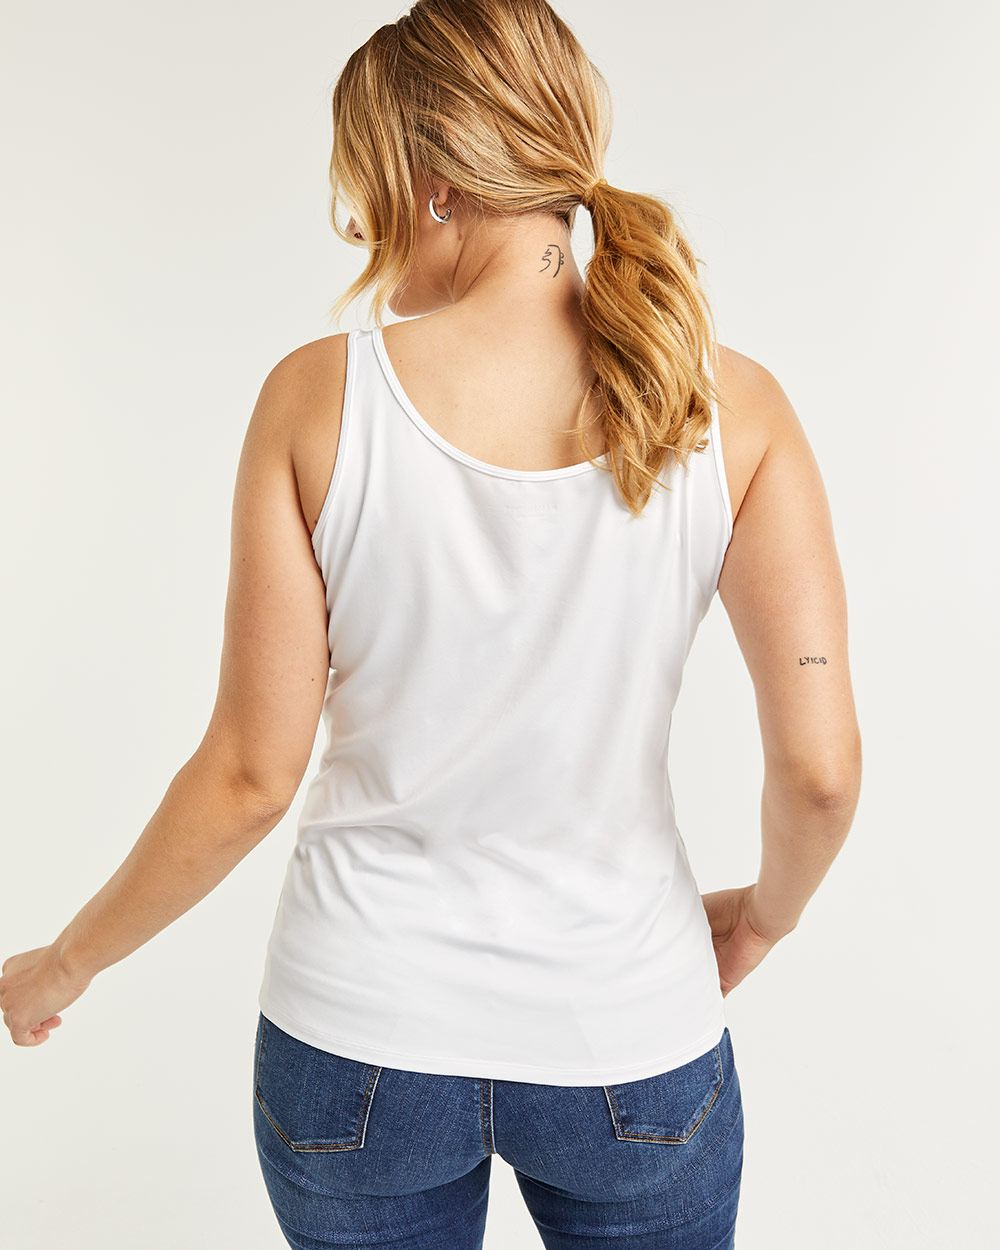 R Essentials Tank Top